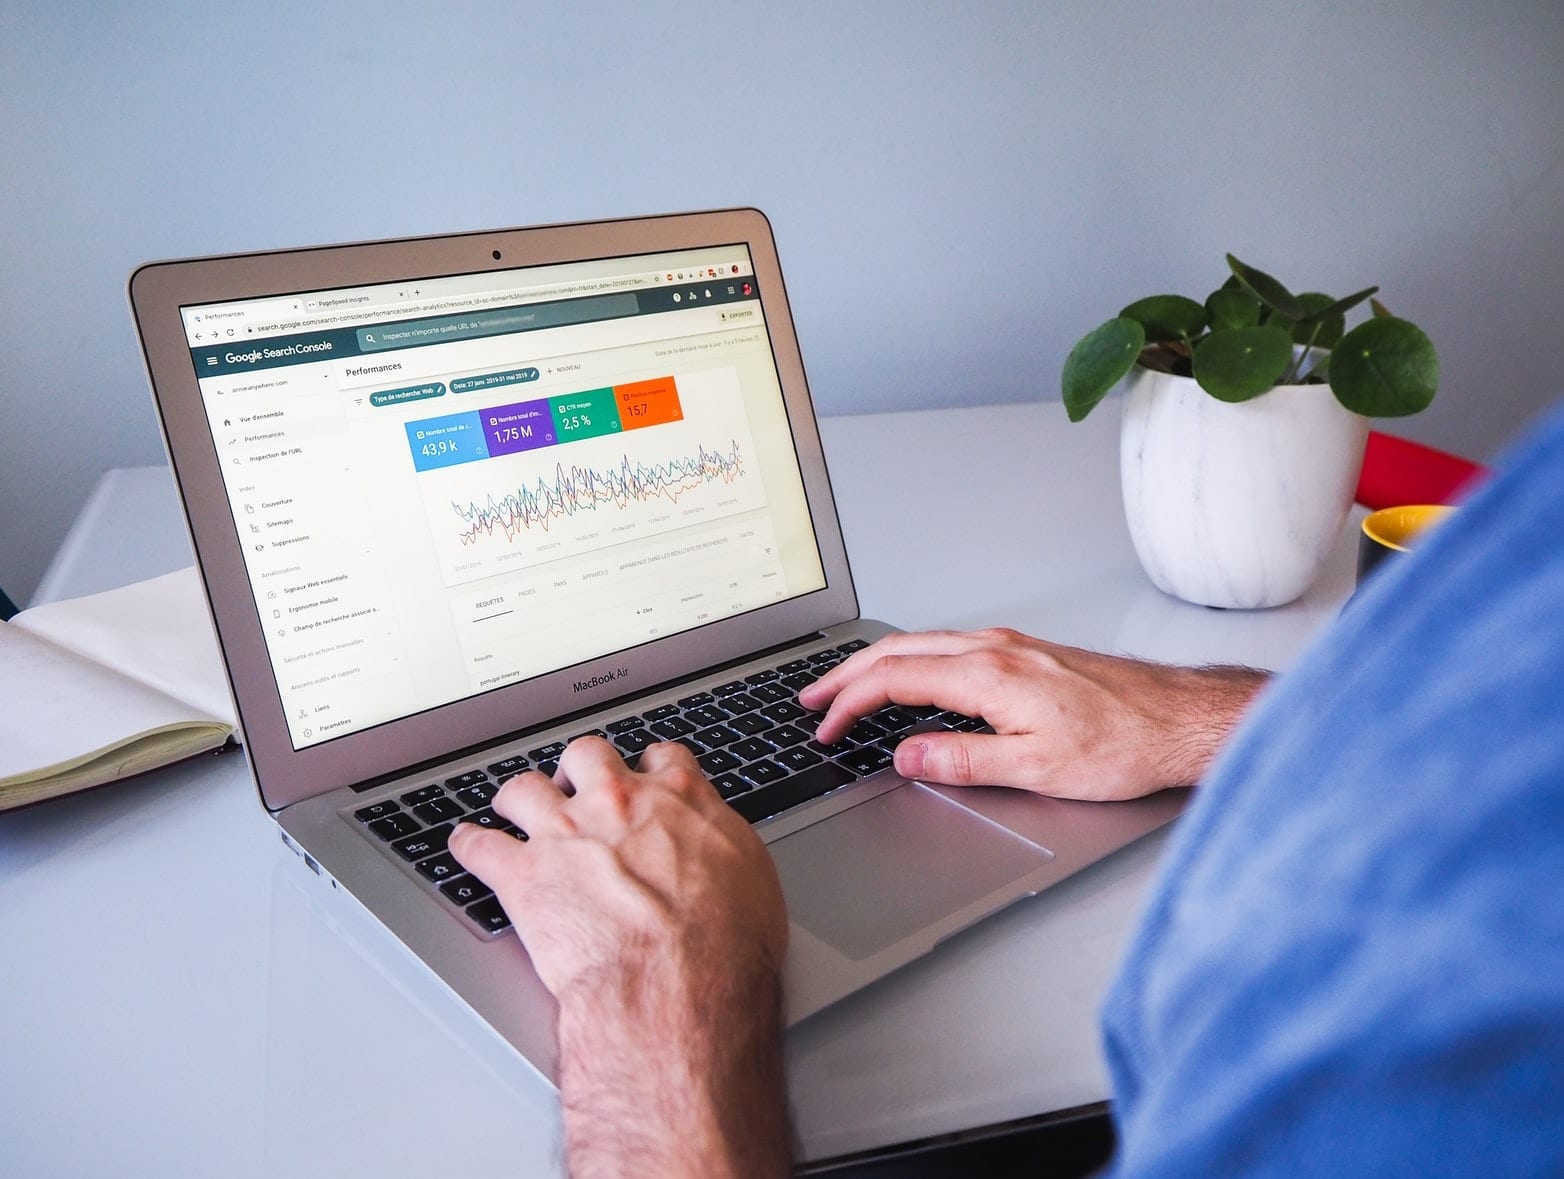 person accessing Google Search Console on a macbook laptop